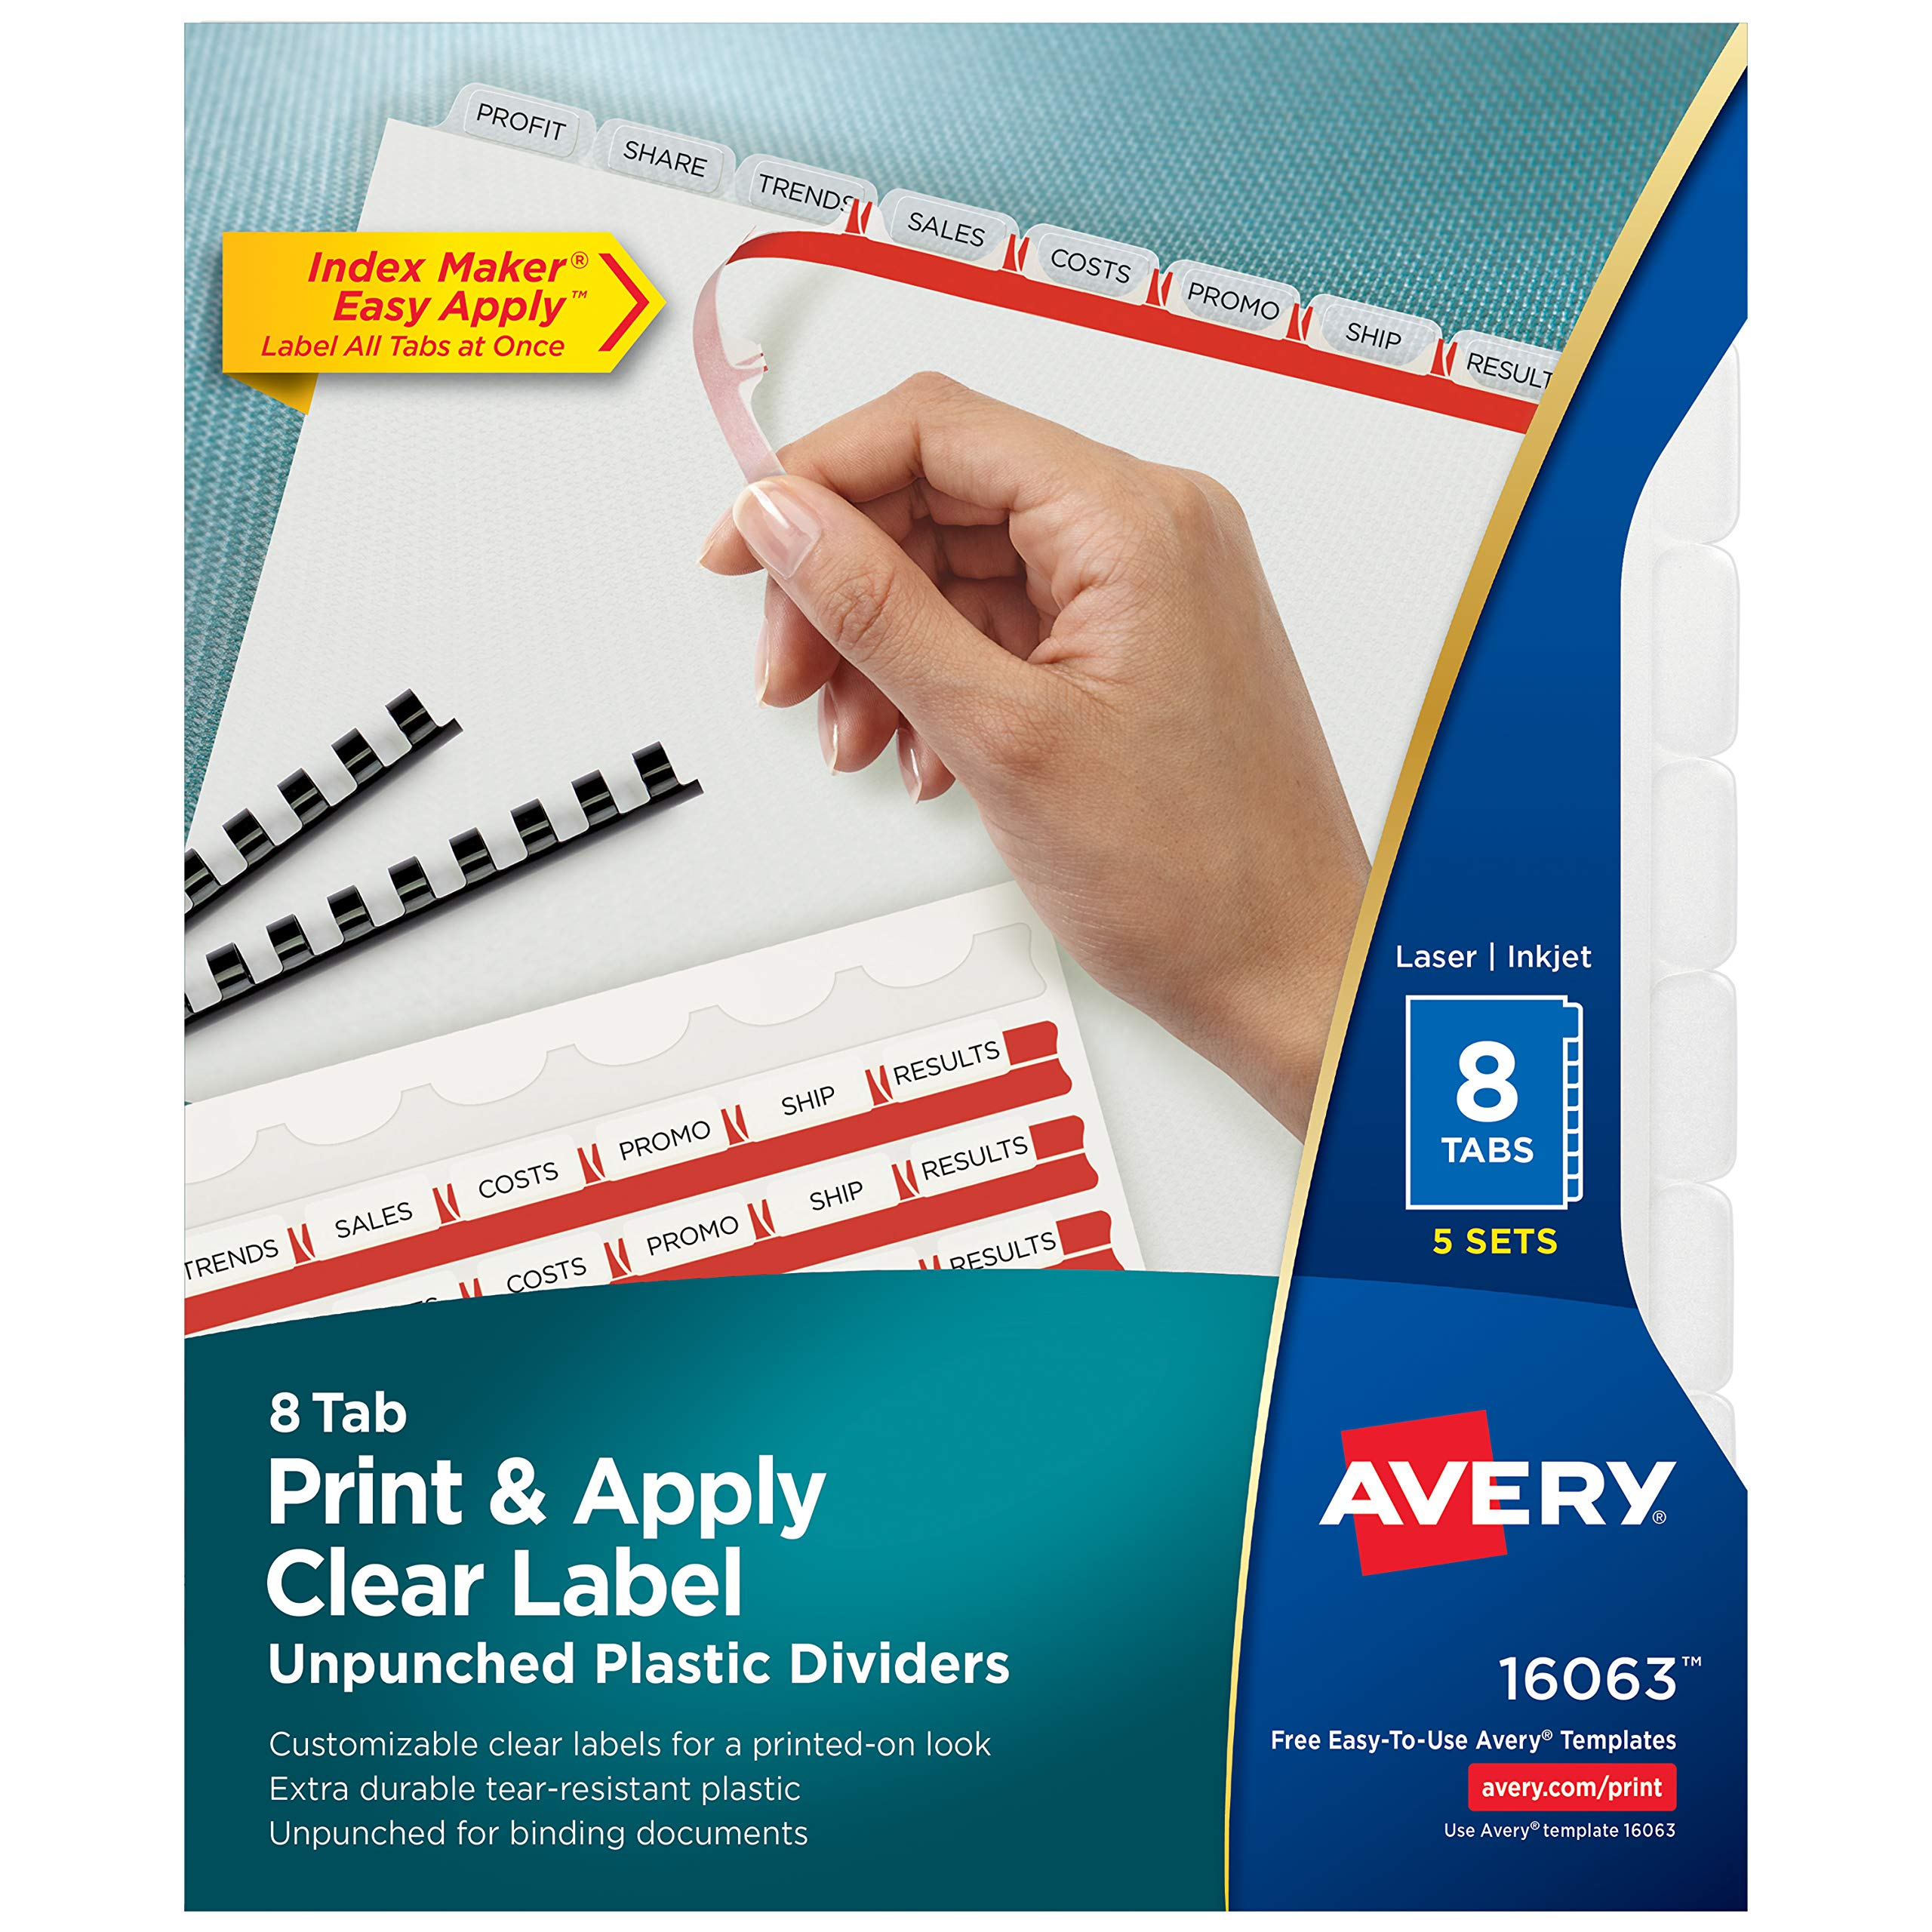 Avery 8-Tab Unpunched Plastic Dividers, Easy Print & Apply Clear Label Strip, Index Maker, 5 Sets (16062) by AVERY